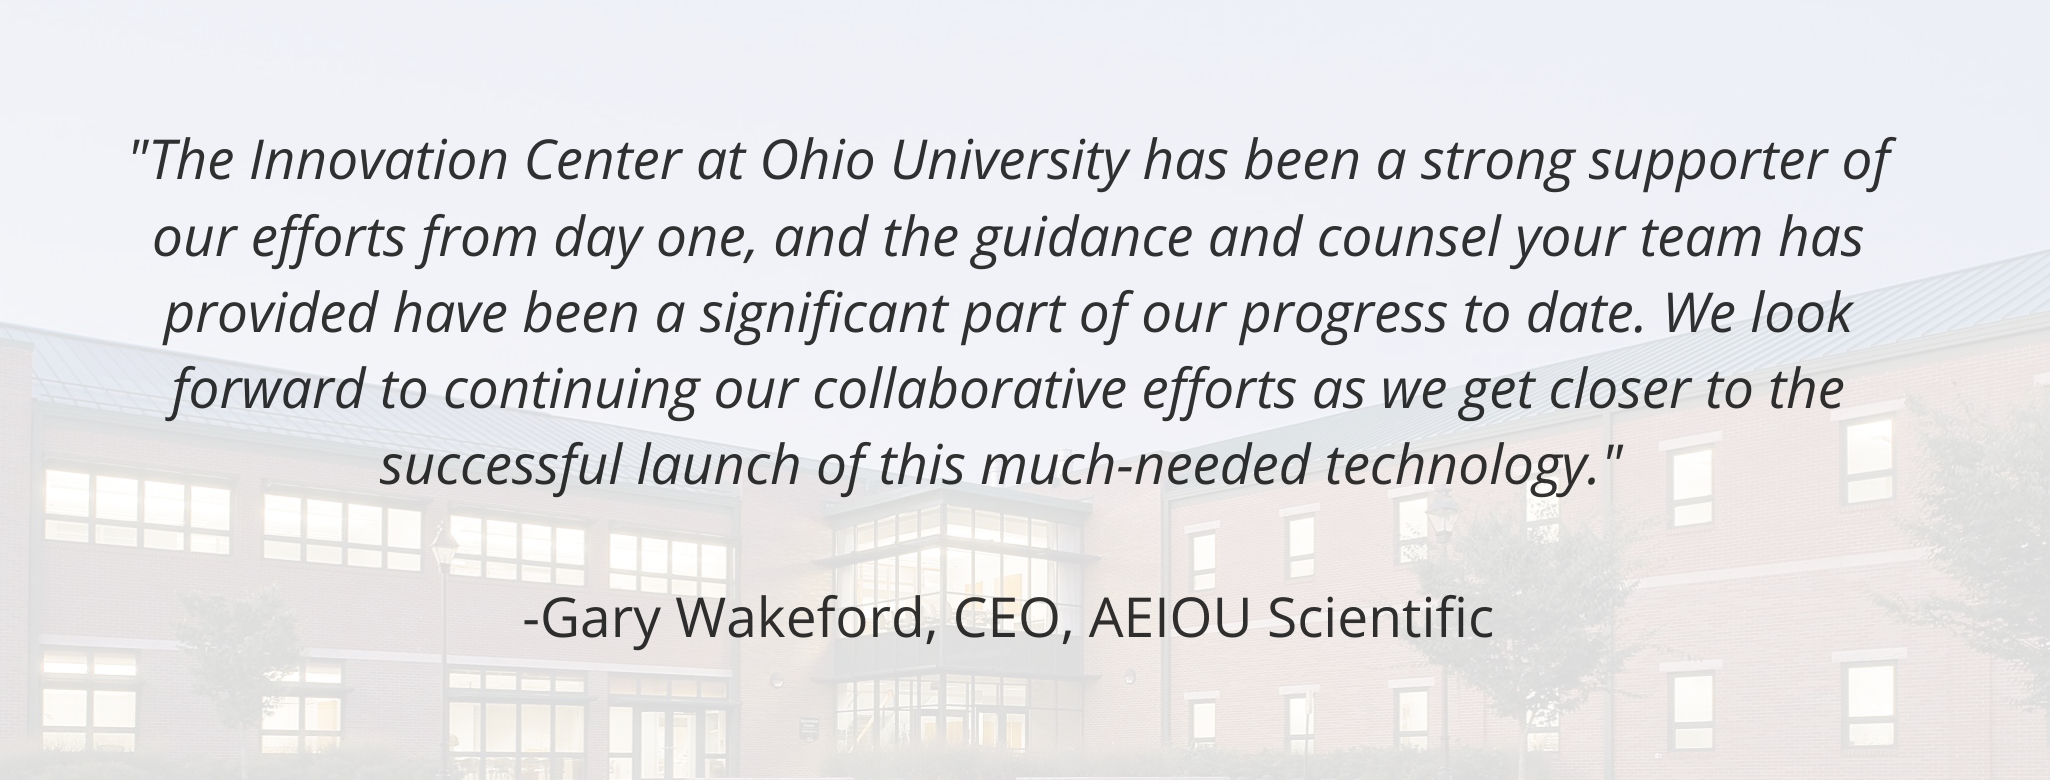 """The Innovation Center at Ohio University has been a strong supporter of our efforts from day one, and the guidance and counsel your team has provided have been a significant part of our progress to date. We look forward to continuing our collaborative efforts as we get closer to the successful launch of this much-needed technology.""   -Gary Wakeford, CEO, AEIOU Scientific"